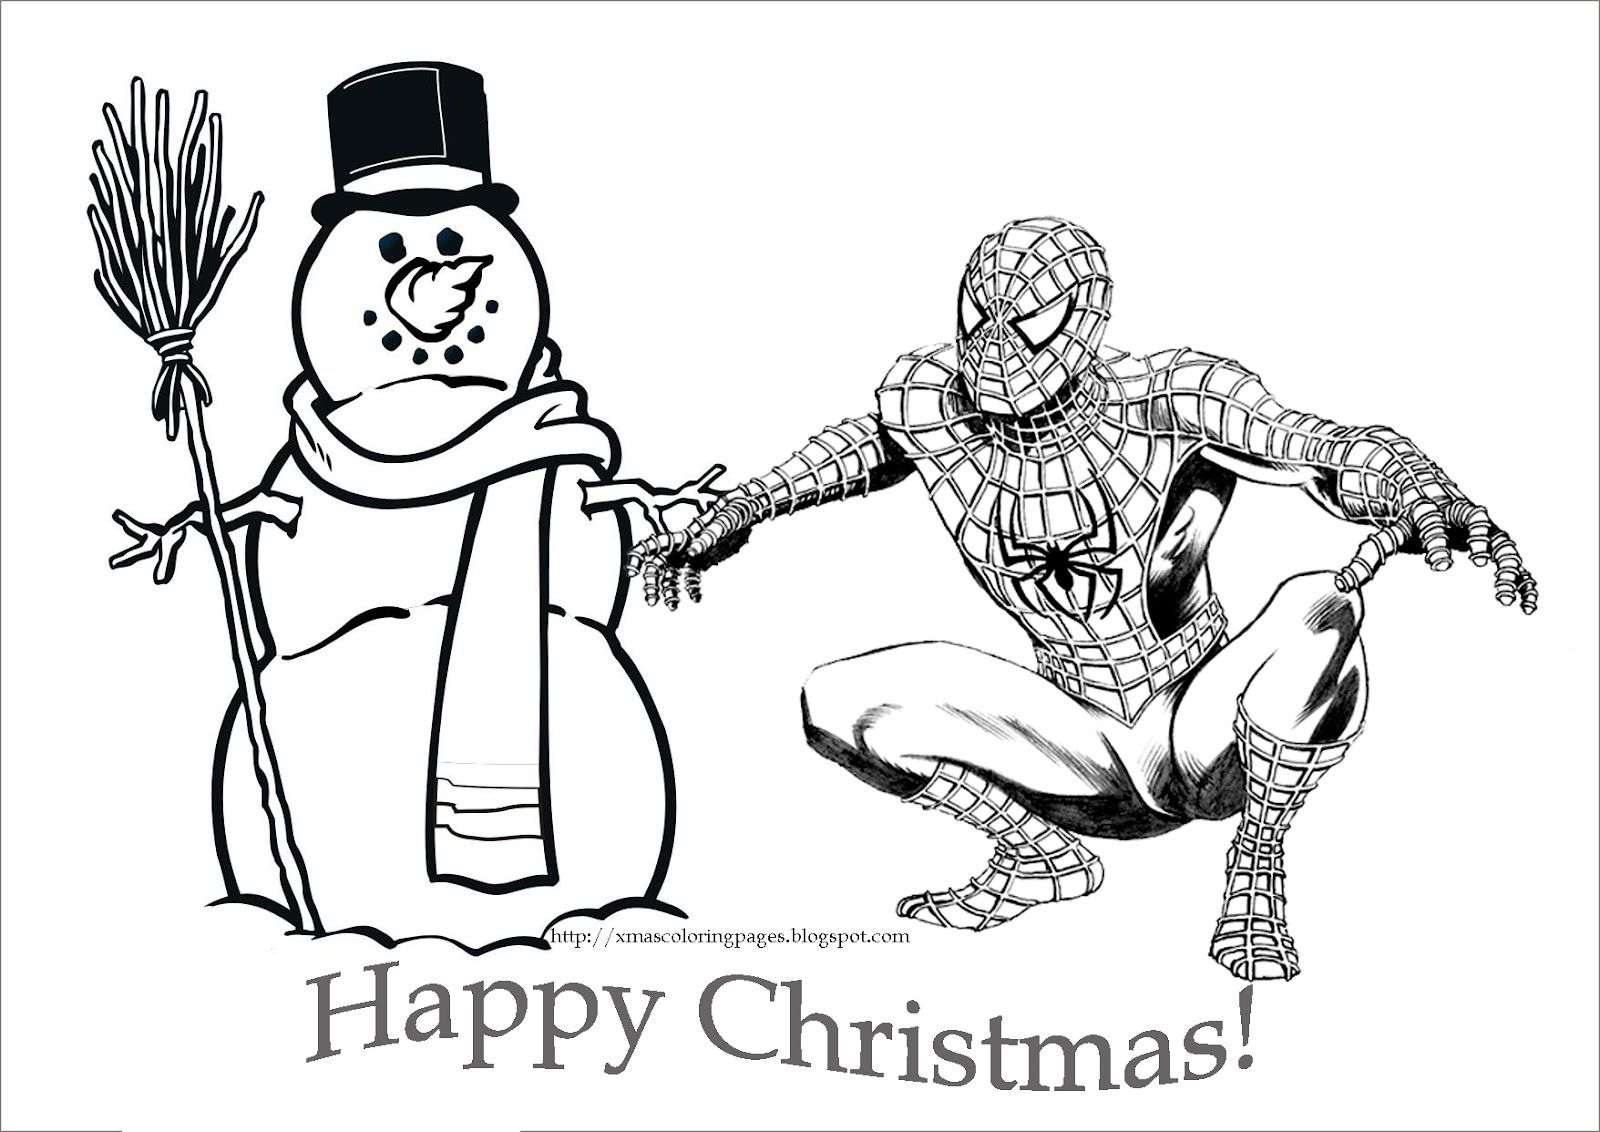 Christmas Thank You Coloring Pages With Spiderman For